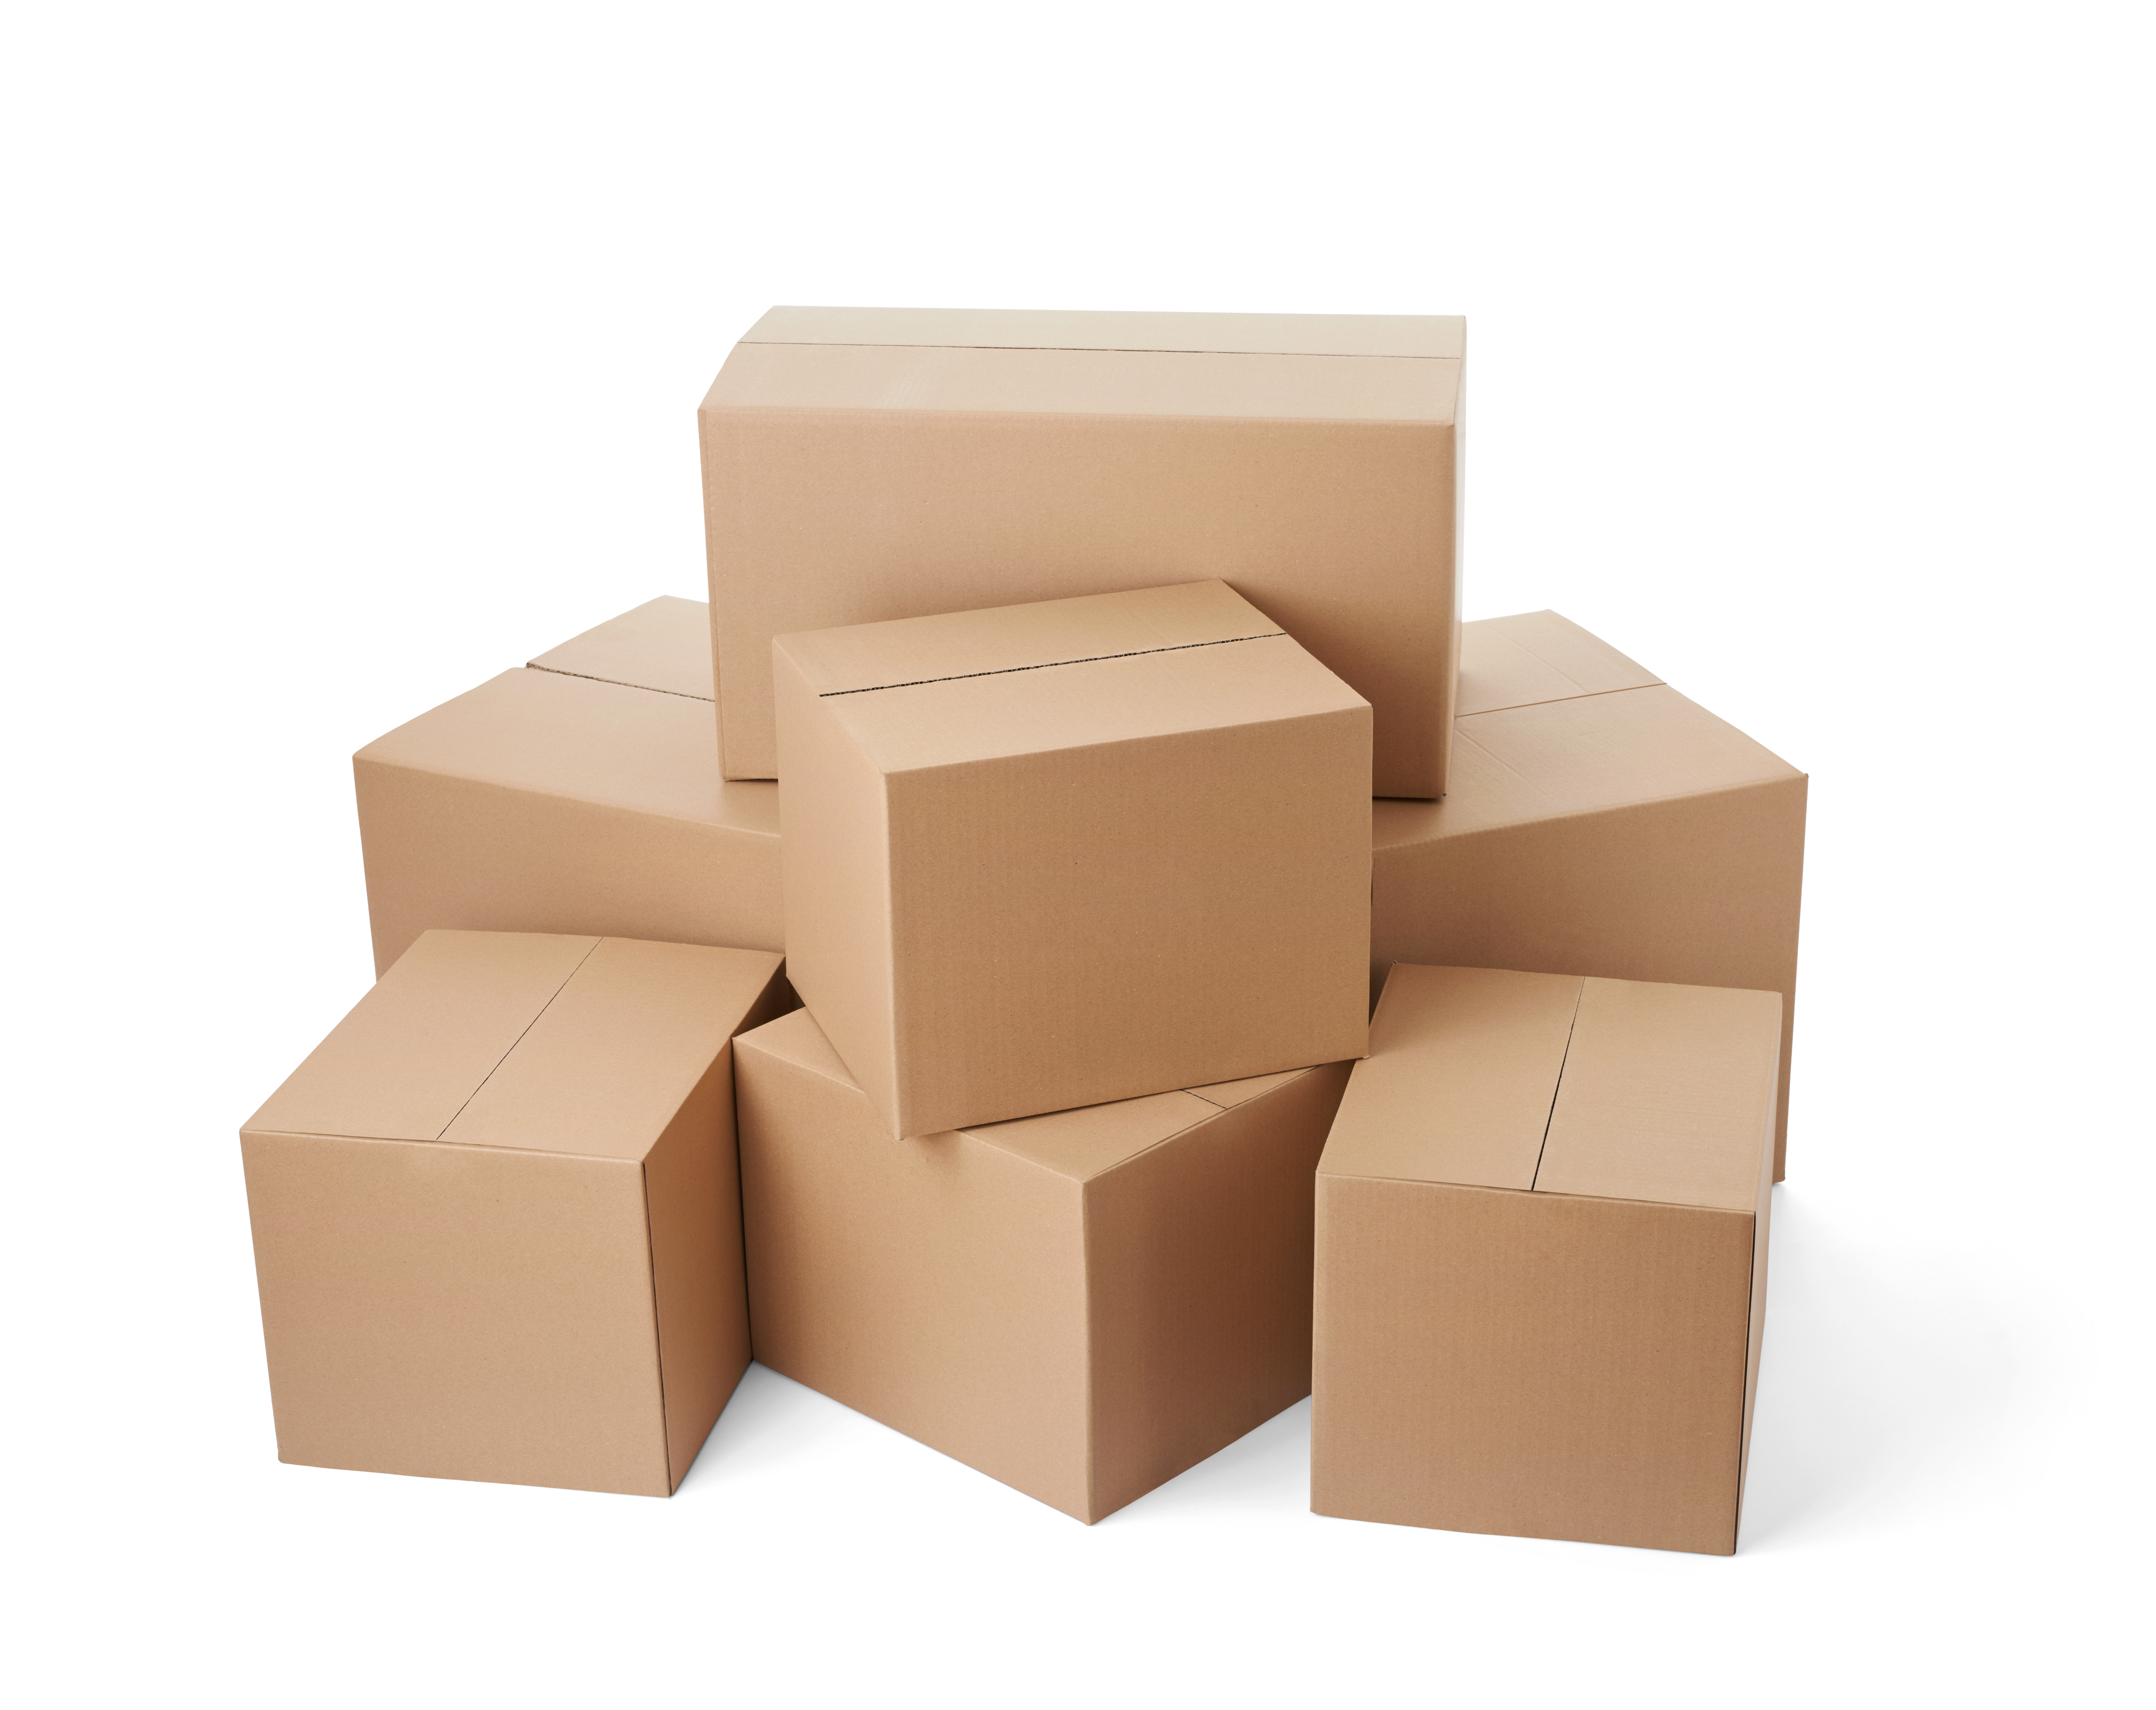 Cardboard Corrugated Boxes 20 x 16 x 14 Pack of 20 Shipping Mailing Packing Box